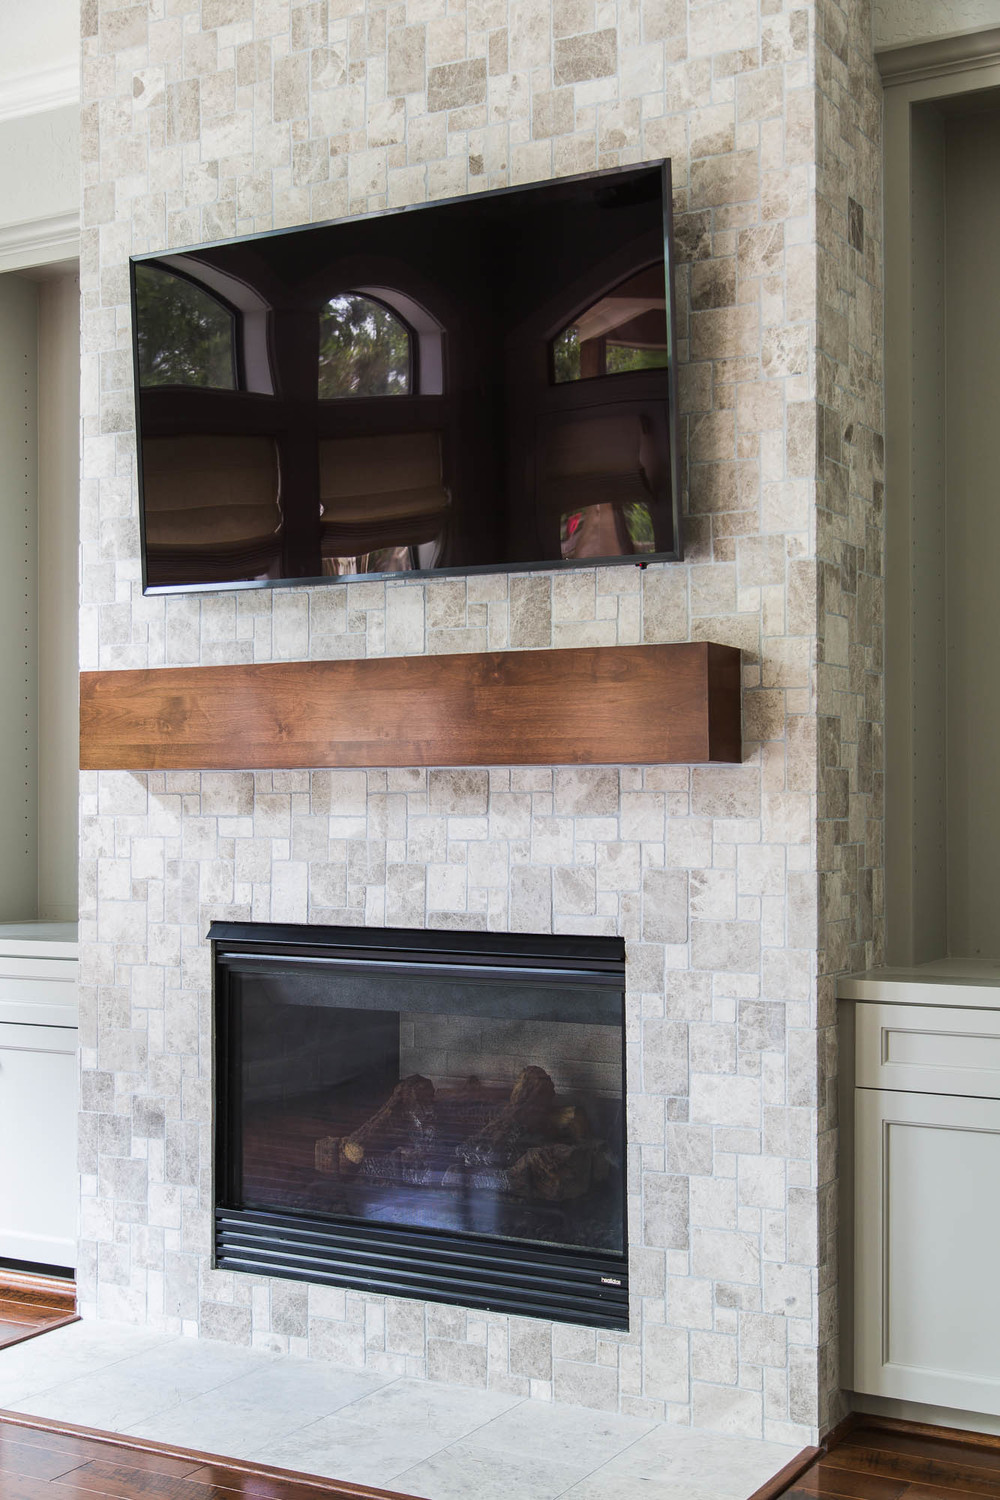 Your fireplace wall 39 s finish consider this important detail with tile or stone cladding designed - Fire place walls ...